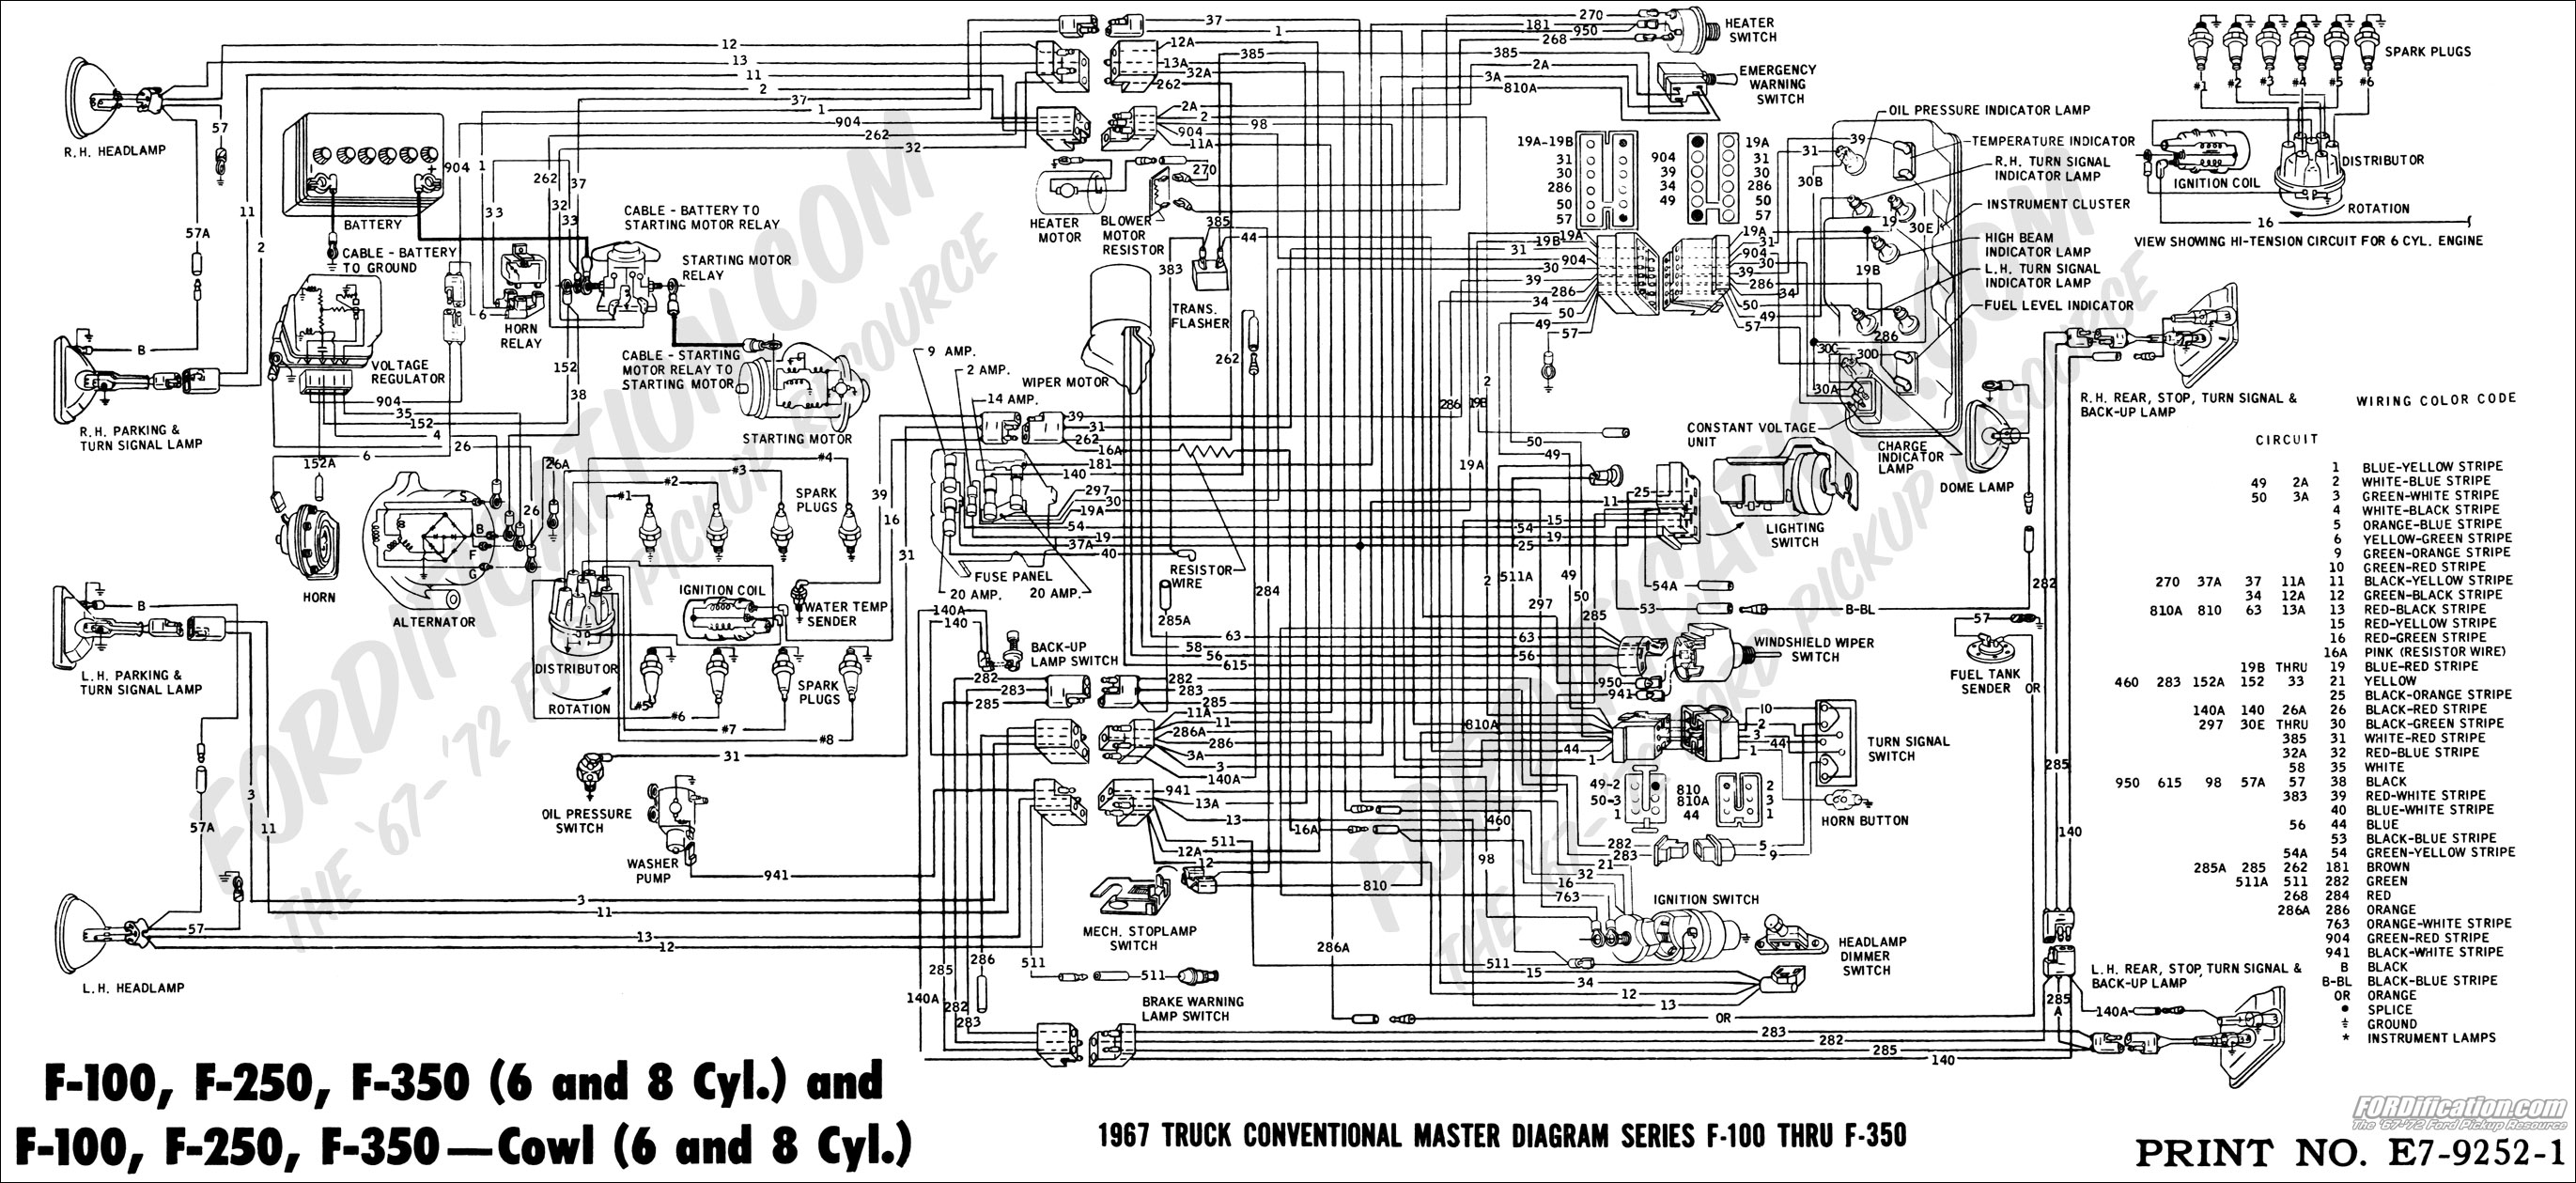 67masterdiagram ford wiring harness diagram ford wiring diagrams instruction Yamaha Outboard Wiring Diagram at panicattacktreatment.co